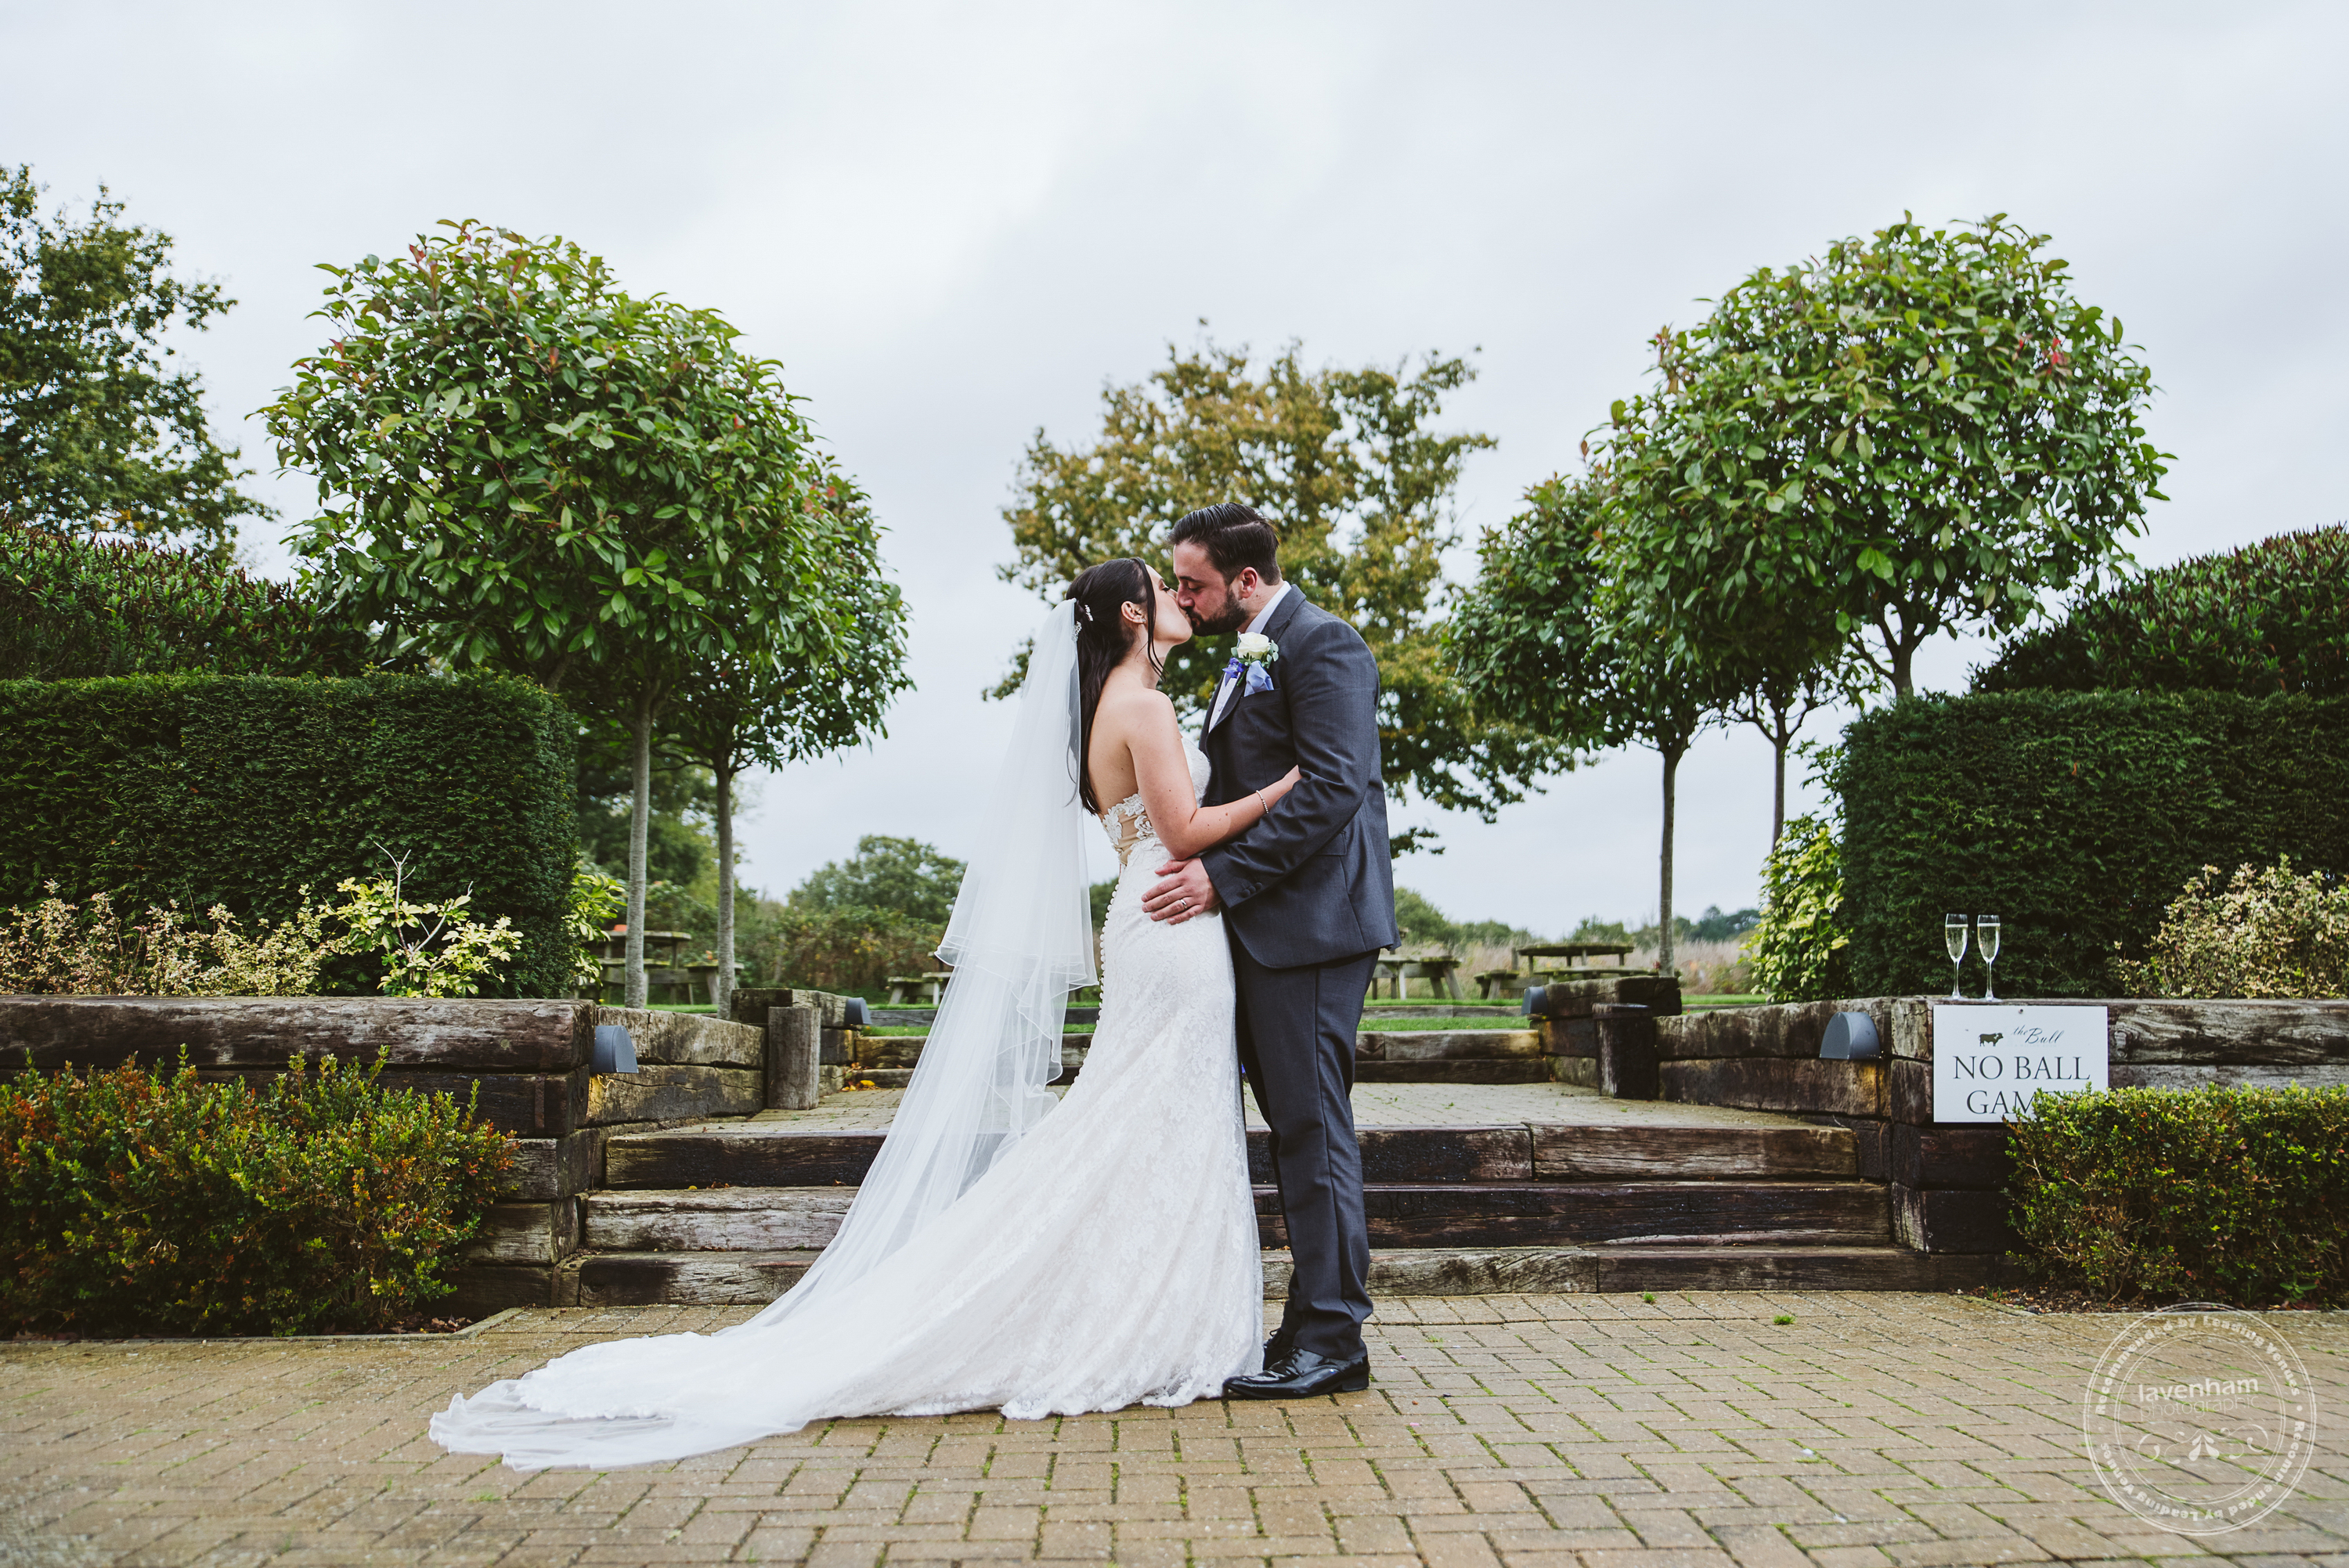 261019 Bull and Willow Room Essex Wedding Photographer 055